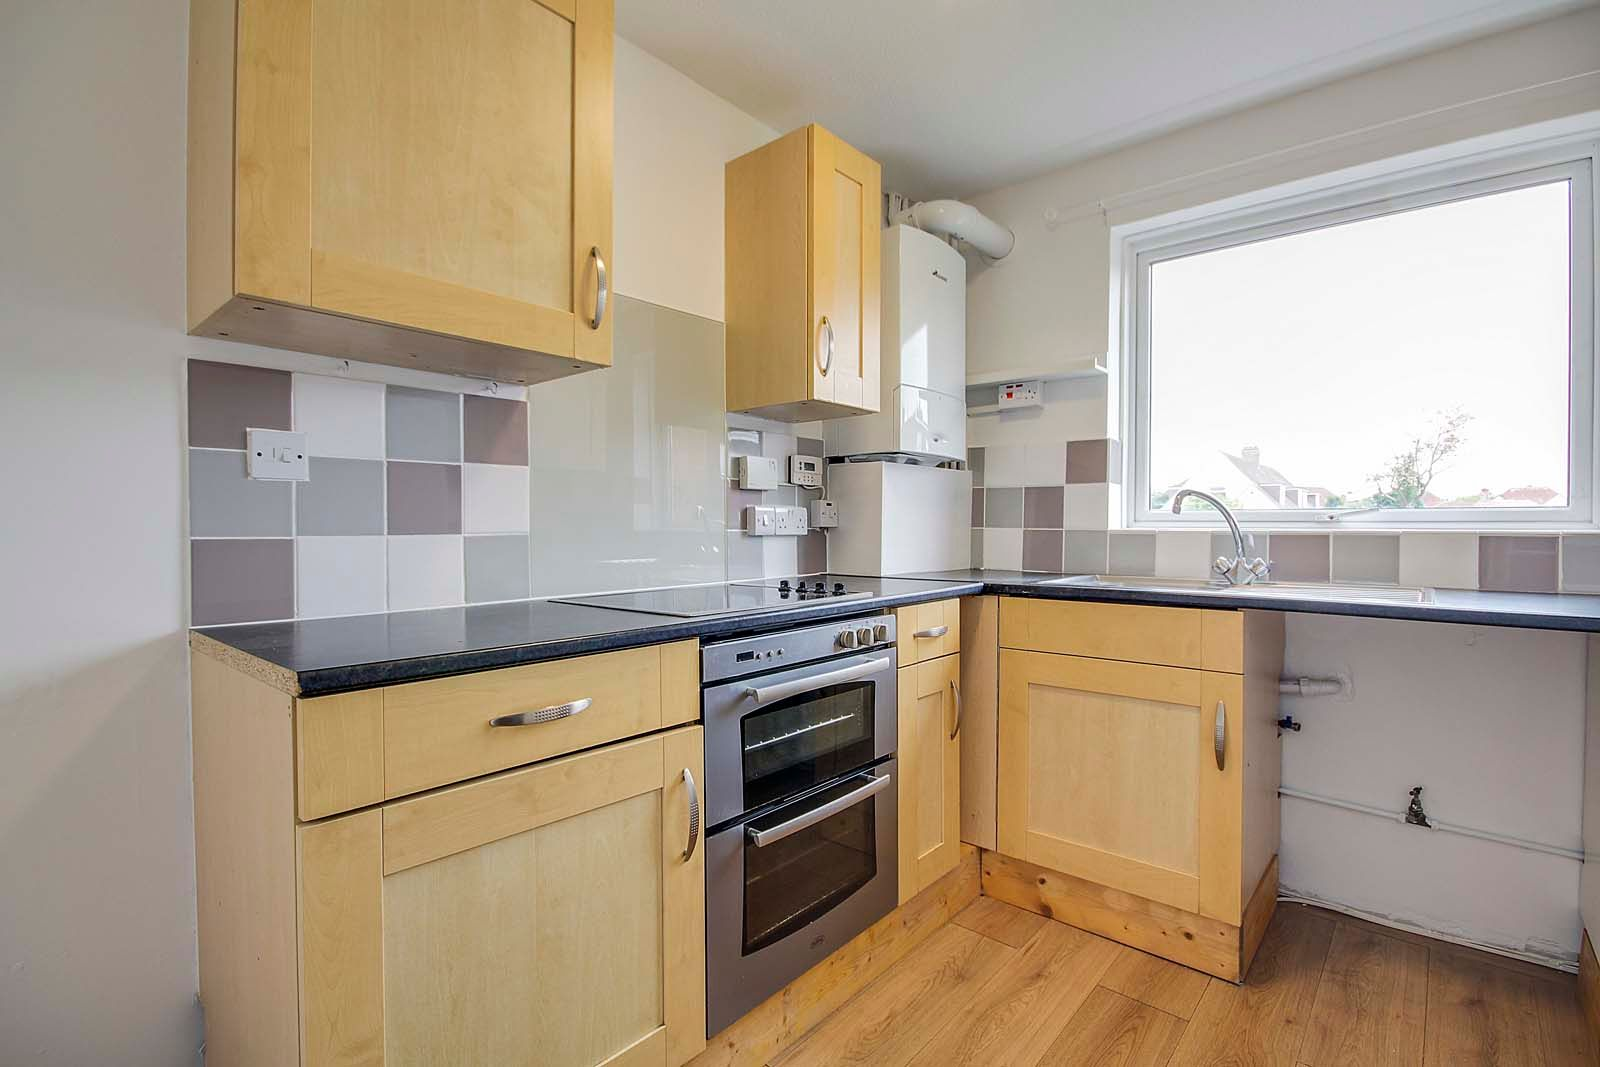 2 bed house for sale in Church Way COMP Jan 2019  - Property Image 4